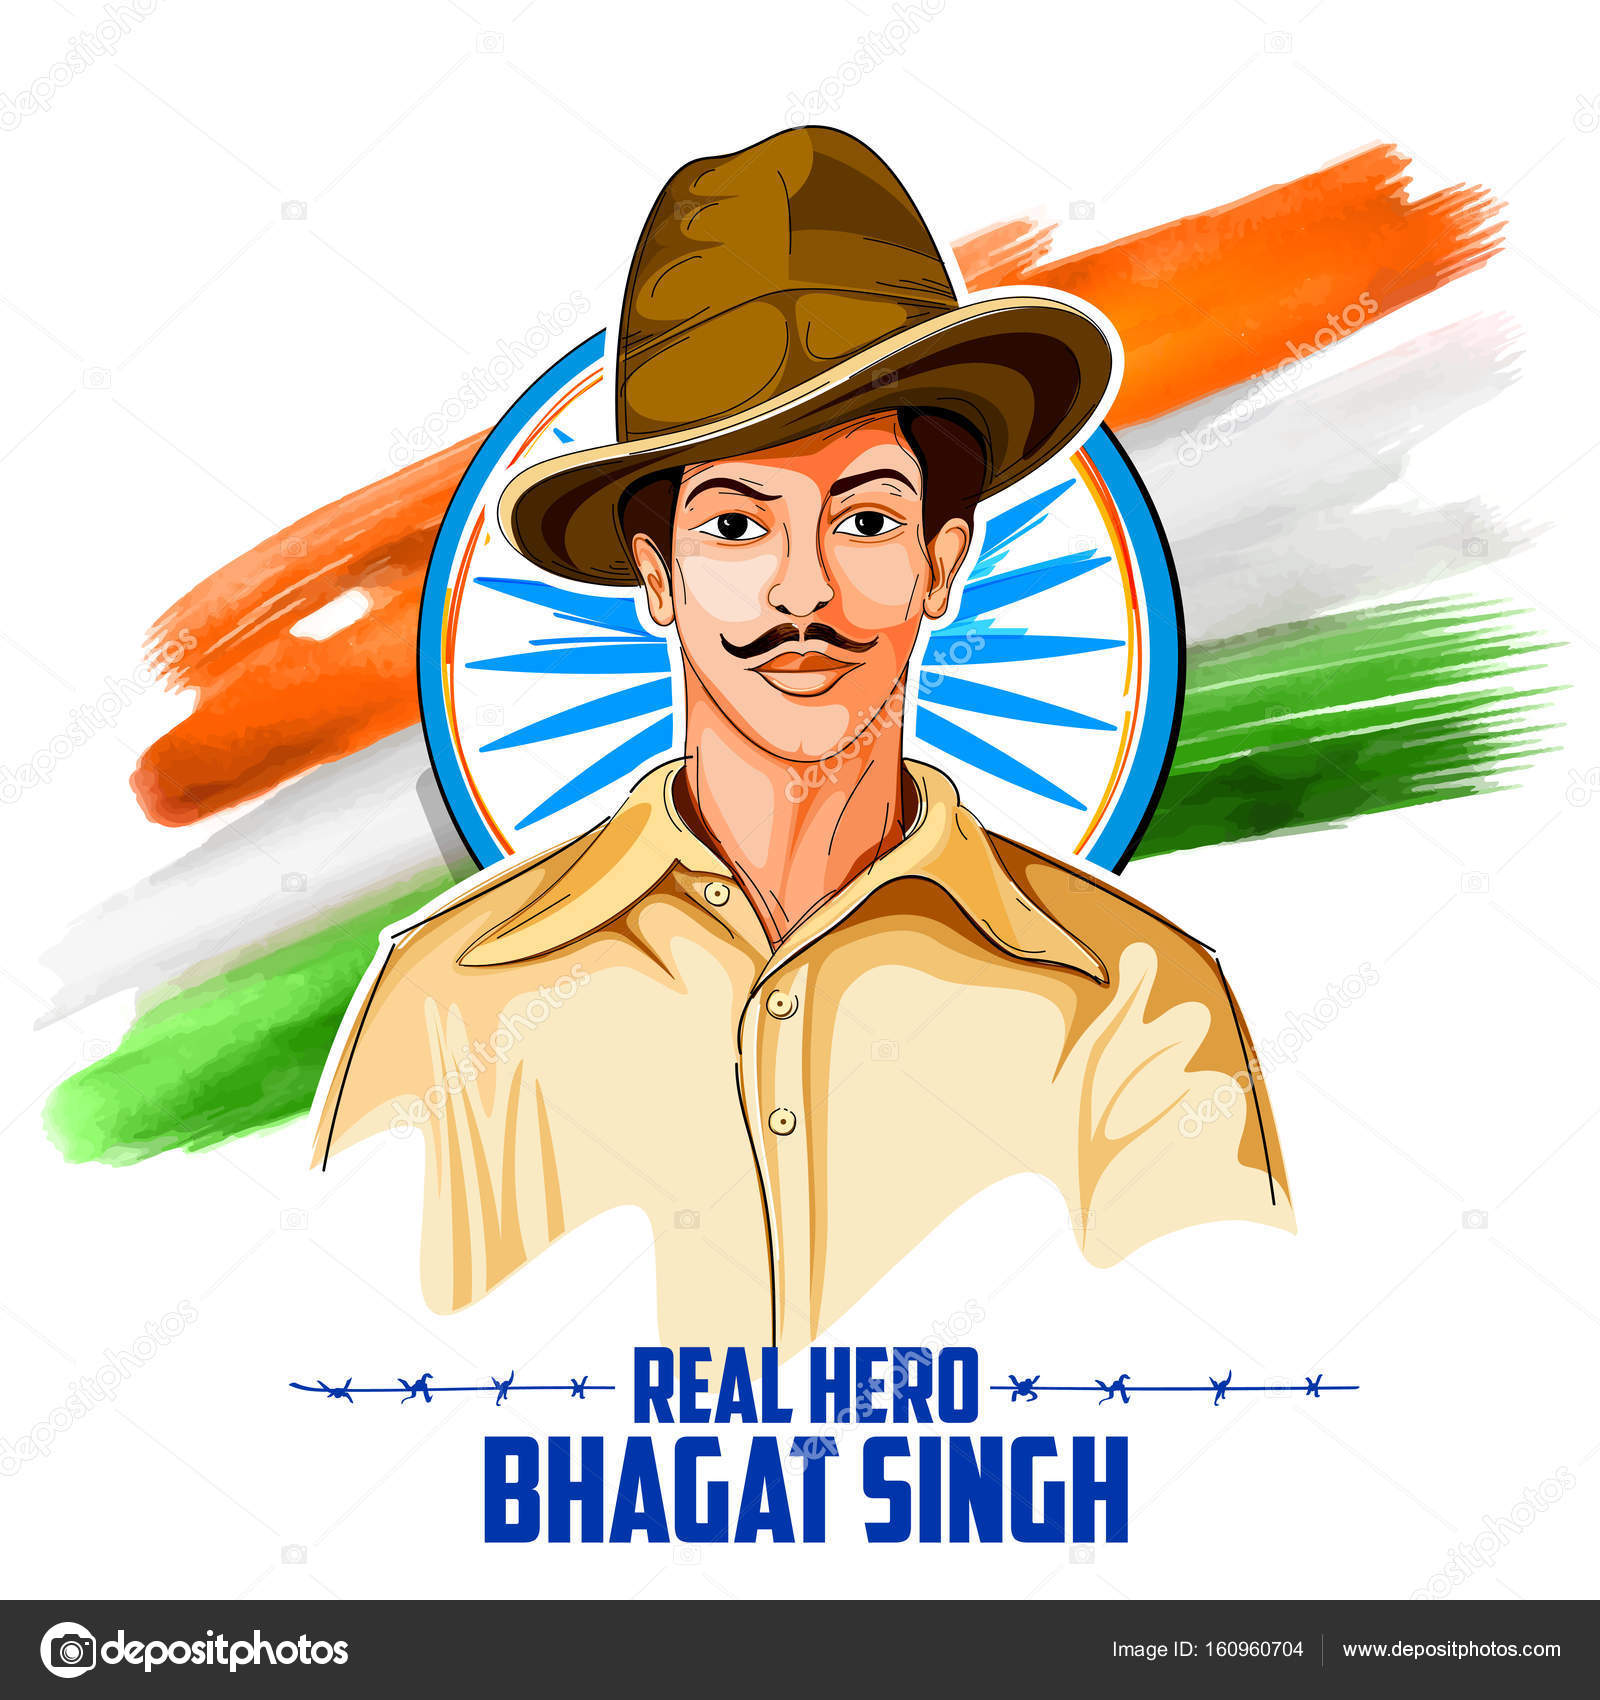 Tricolor india background with nation hero and freedom fighter tricolor india background with nation hero and freedom fighter bhagat singh for independence day stock thecheapjerseys Gallery